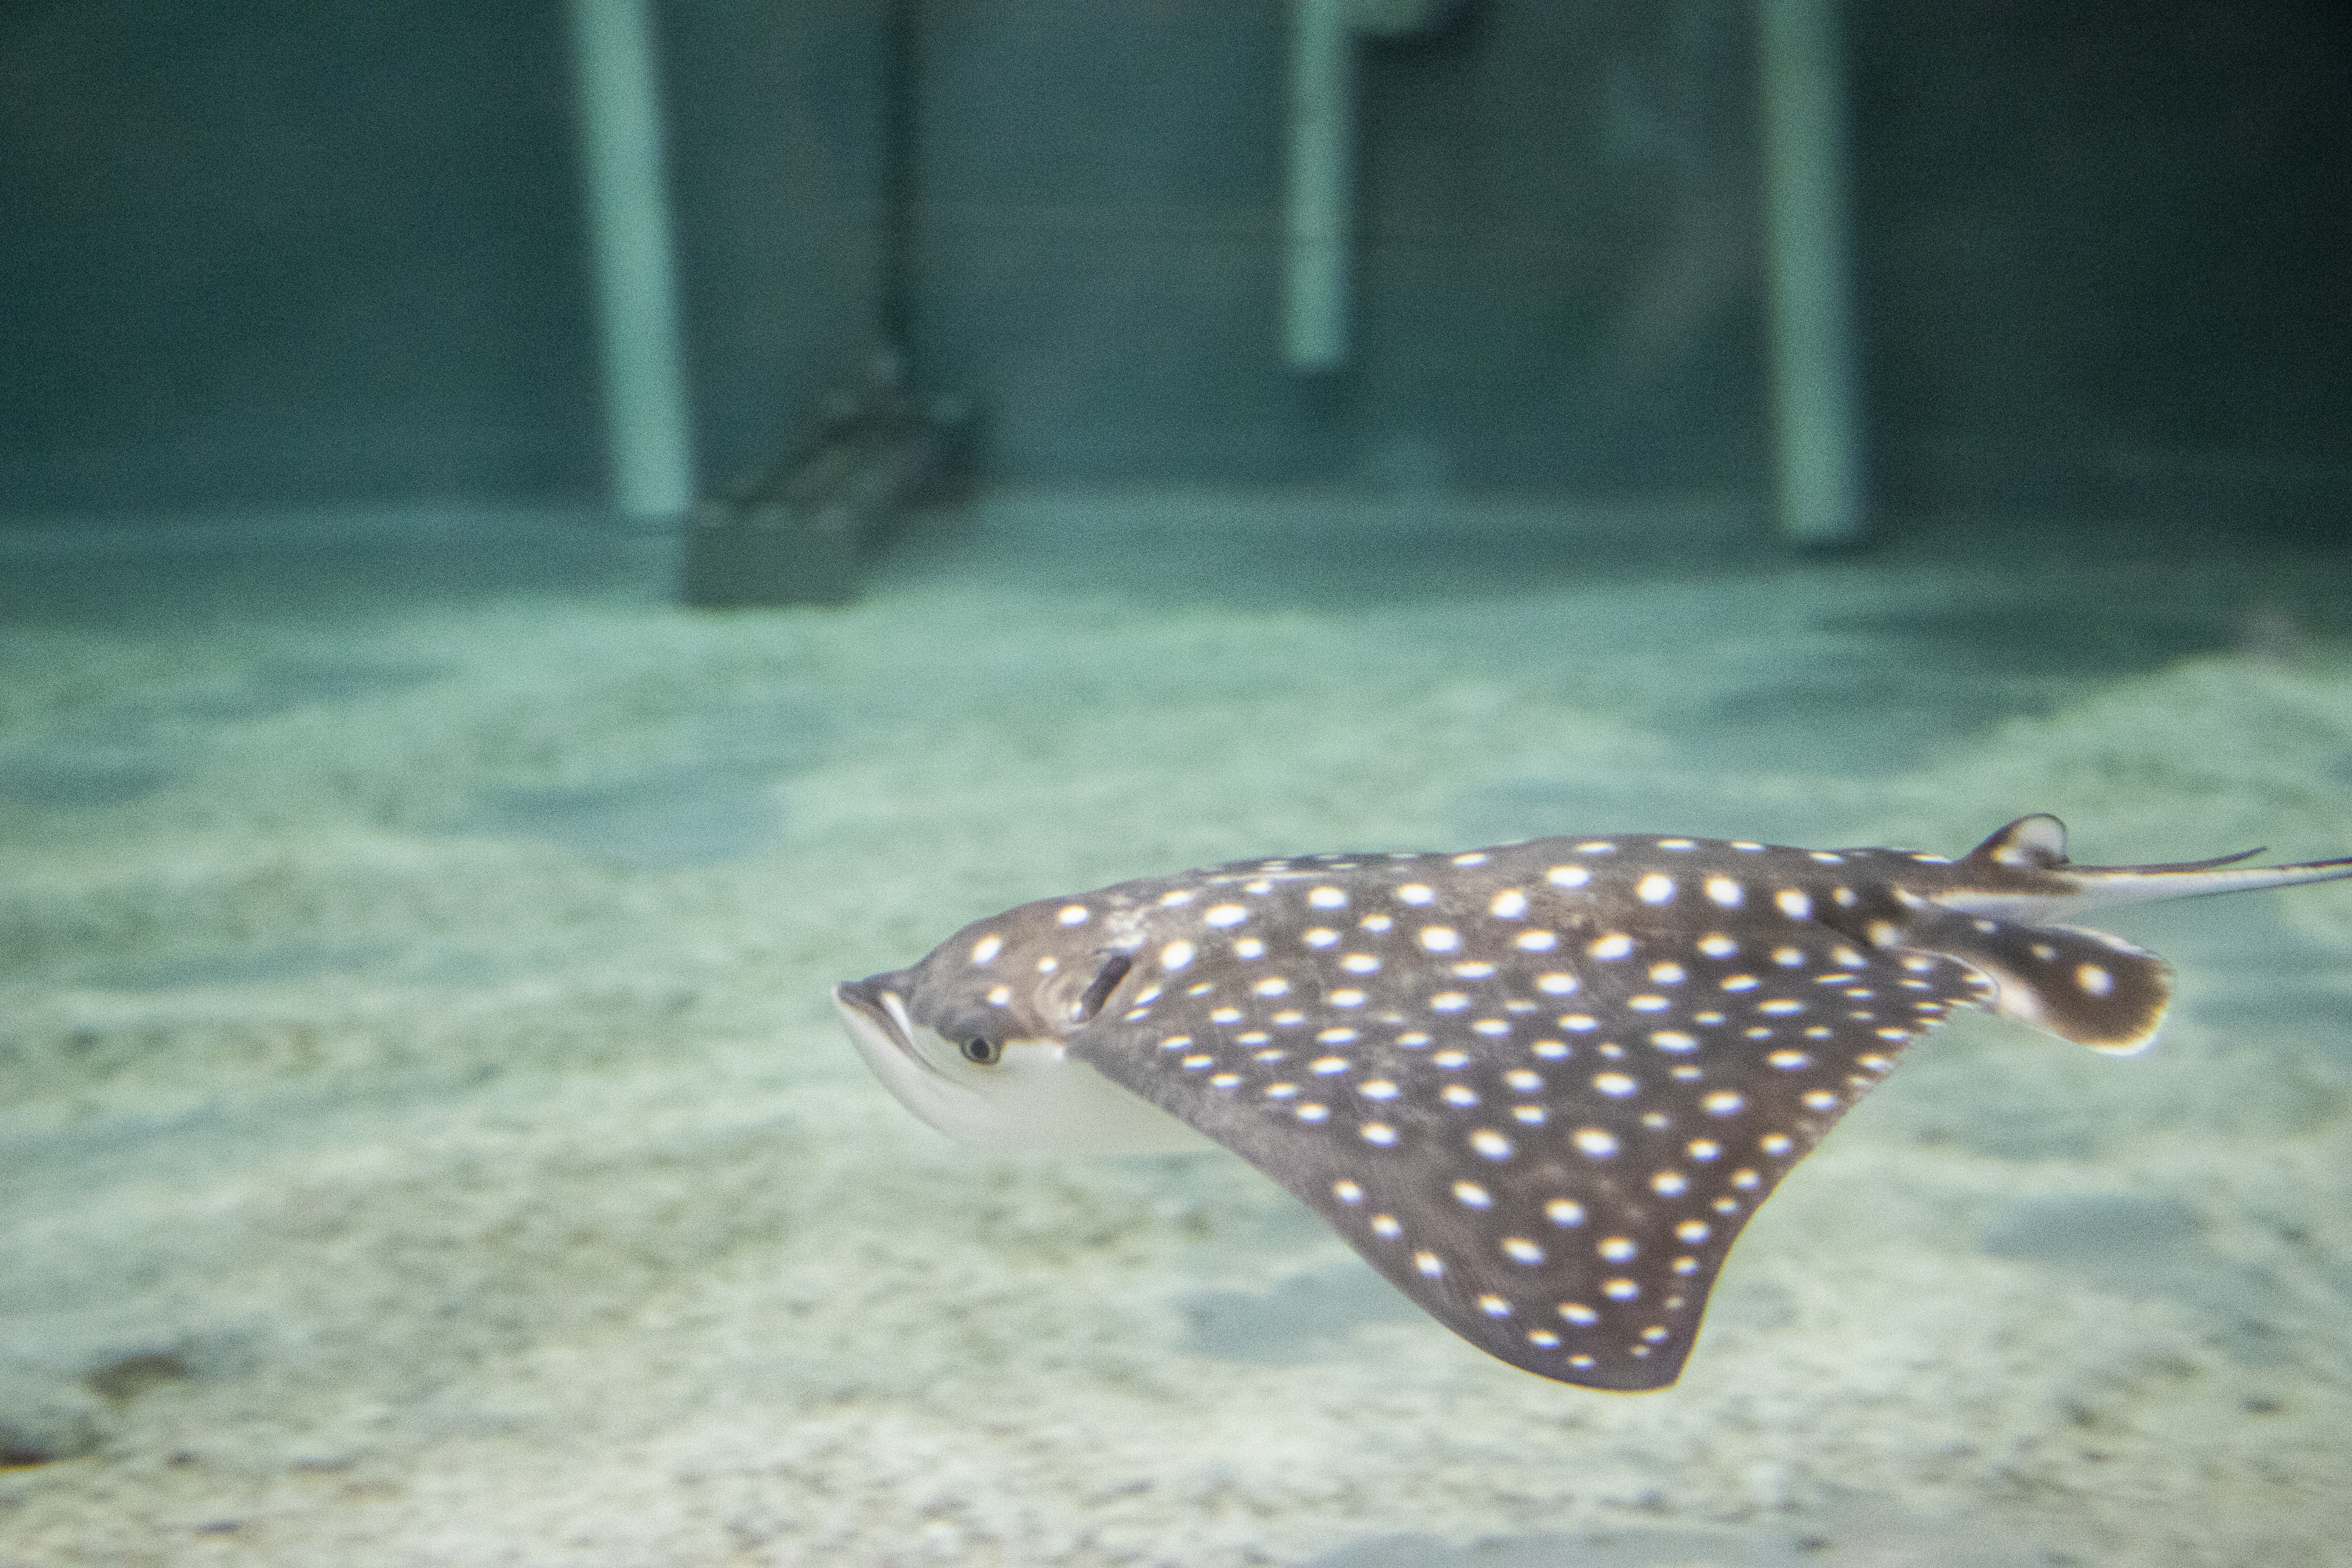 Bowling Green Biological Hours Halloween 2020 A newborn spotted eagle ray has died at the Virginia Aquarium